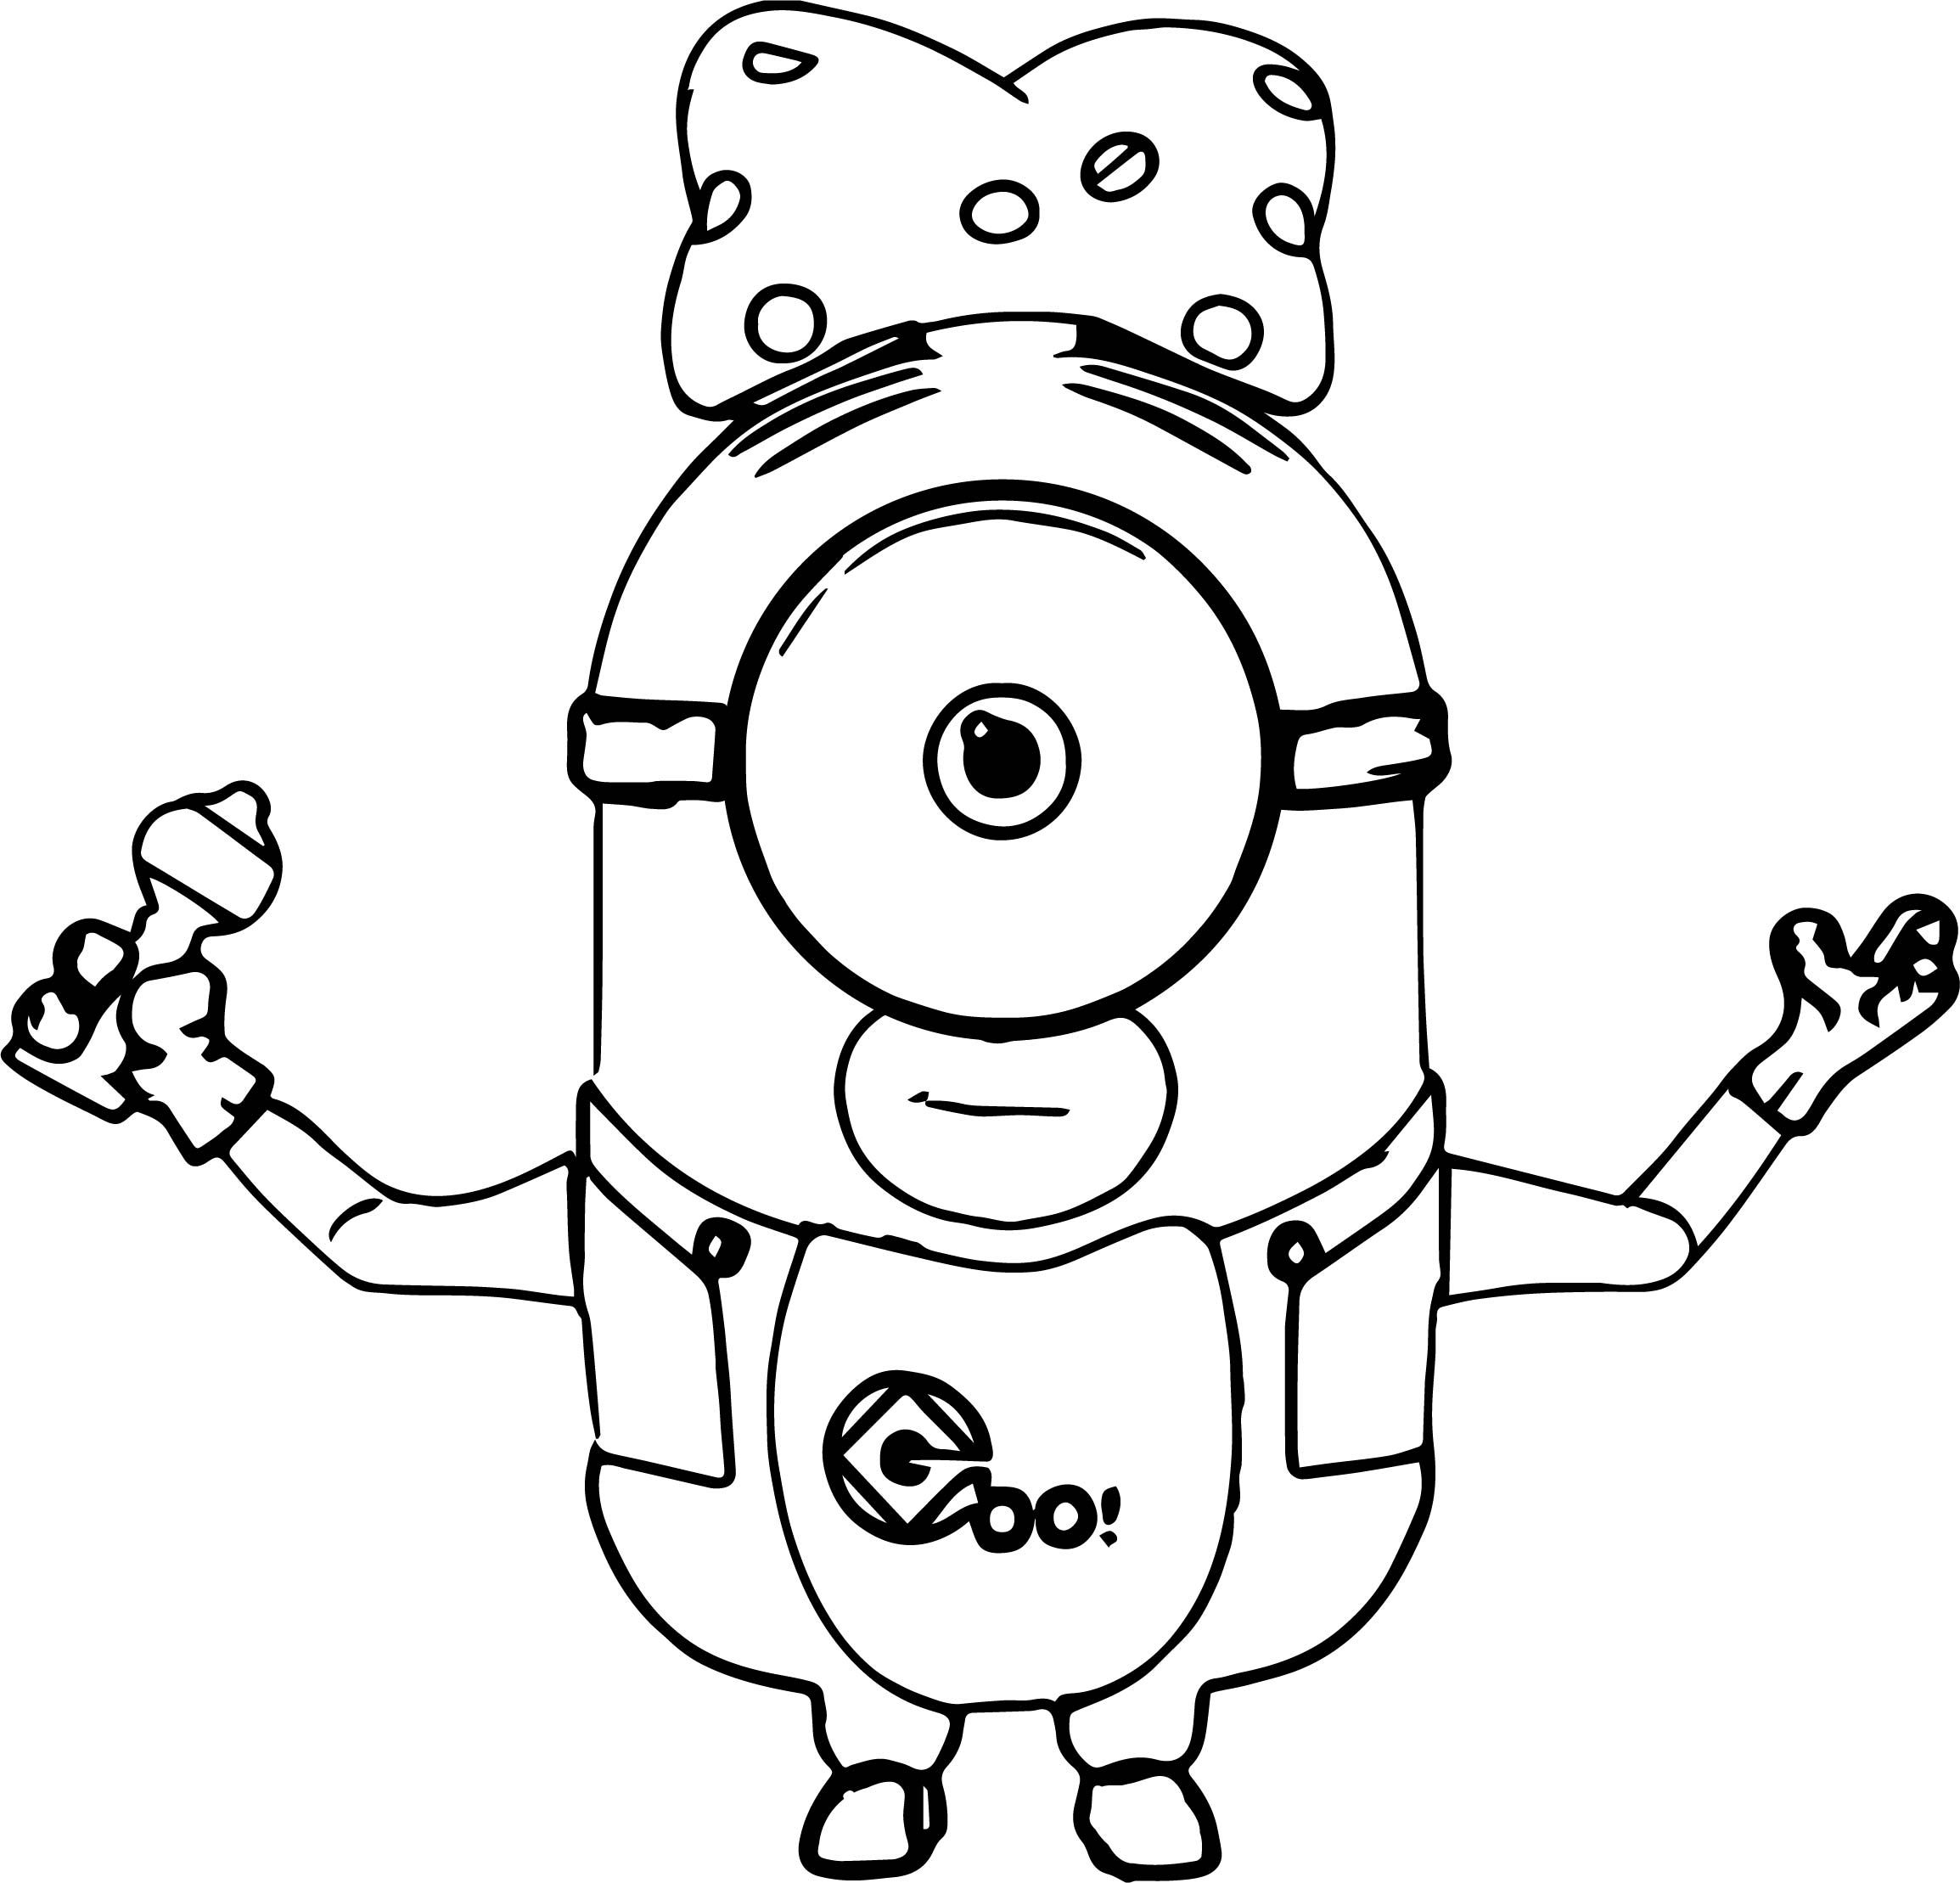 Cool Just Baby Minions Coloring Page Minion Coloring Pages Baby